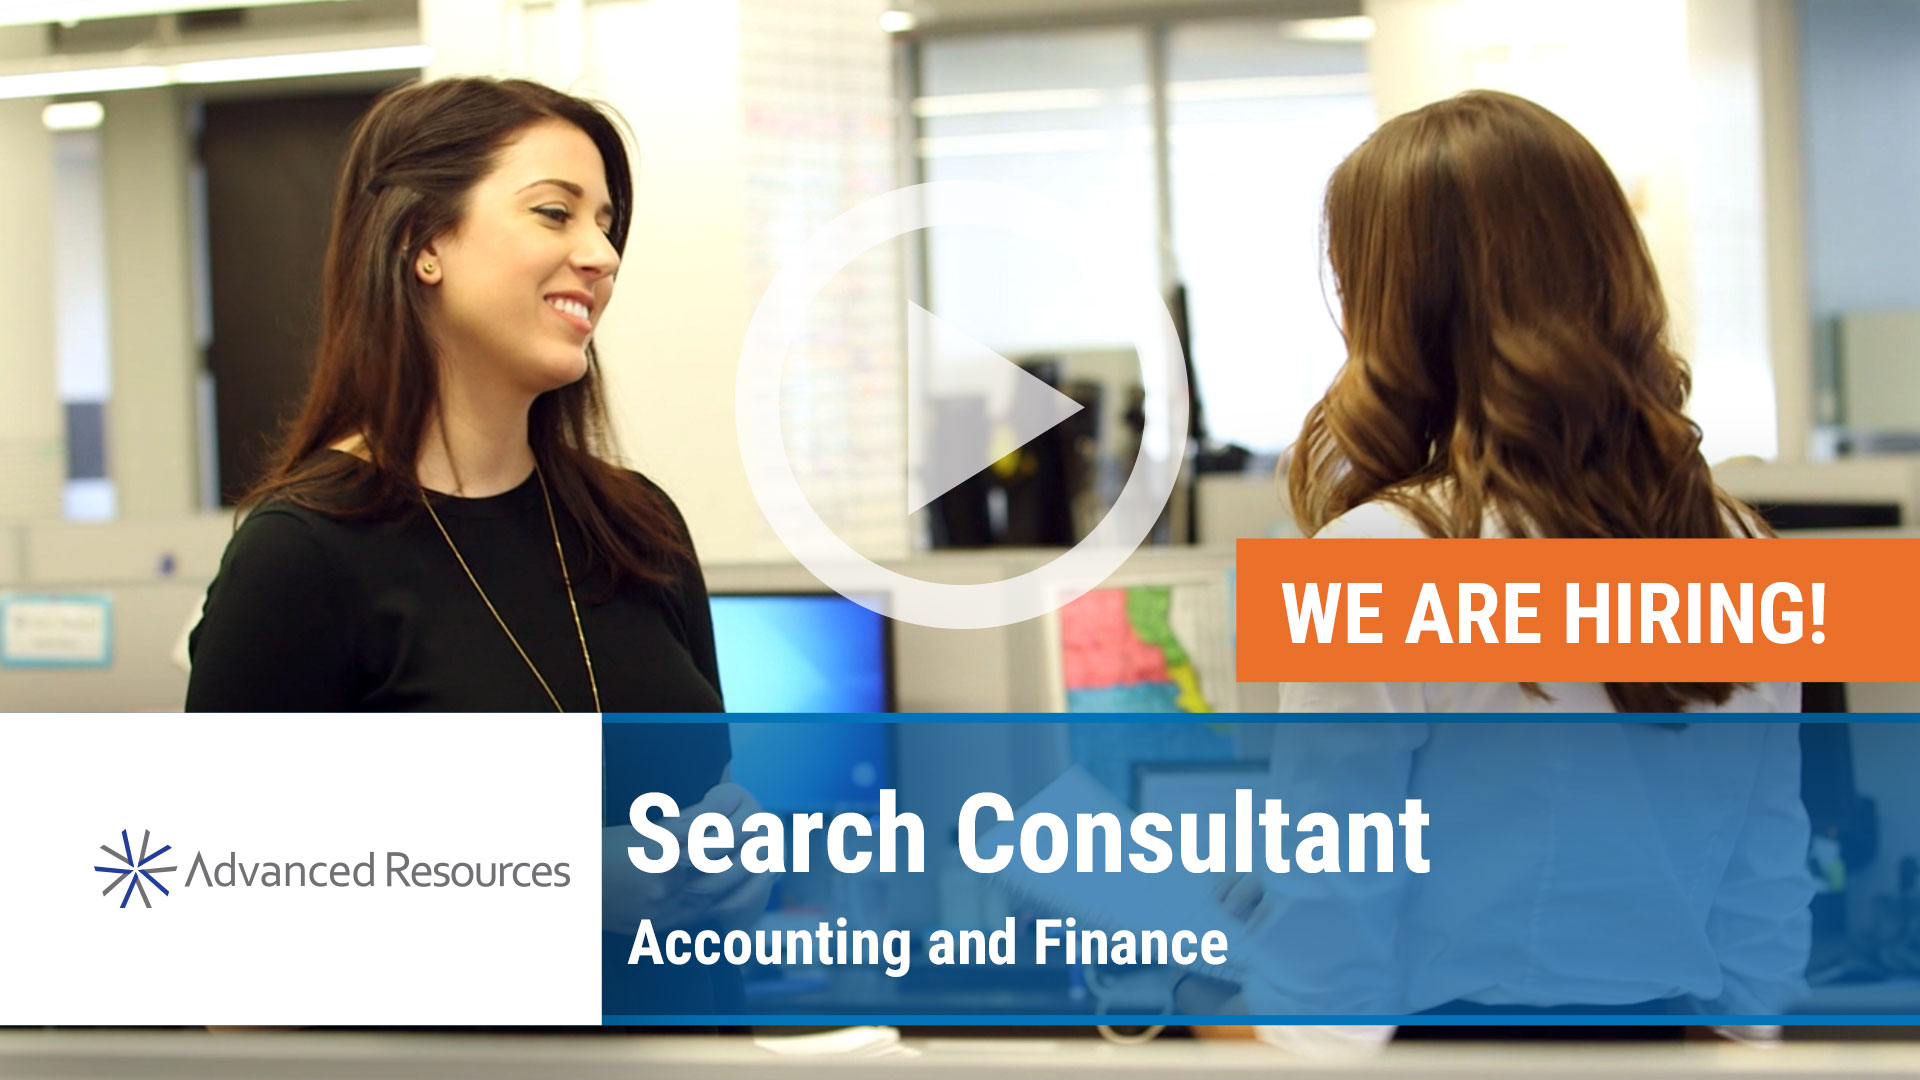 Watch our careers video for available job opening Search Consultant for Accounting and Finance in New York, NY